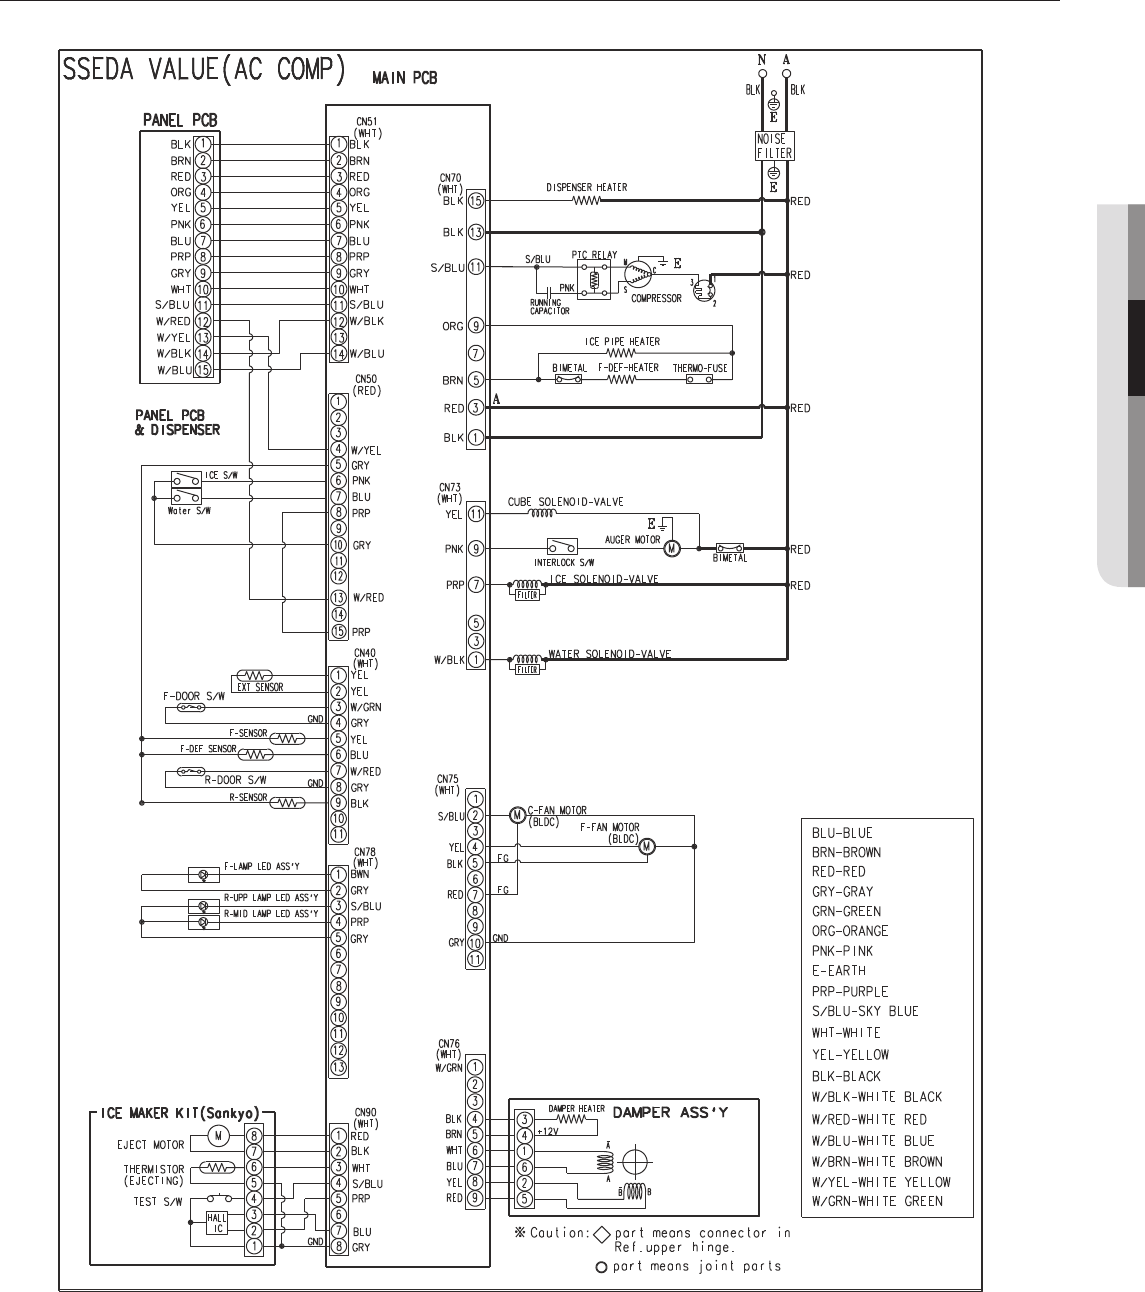 21aa6212 5c03 4539 ac02 99a0885d5c5e bg1f page 31 of samsung refrigerator rs261mdwp user guide wiring diagram for a refrigerator compressor at bayanpartner.co